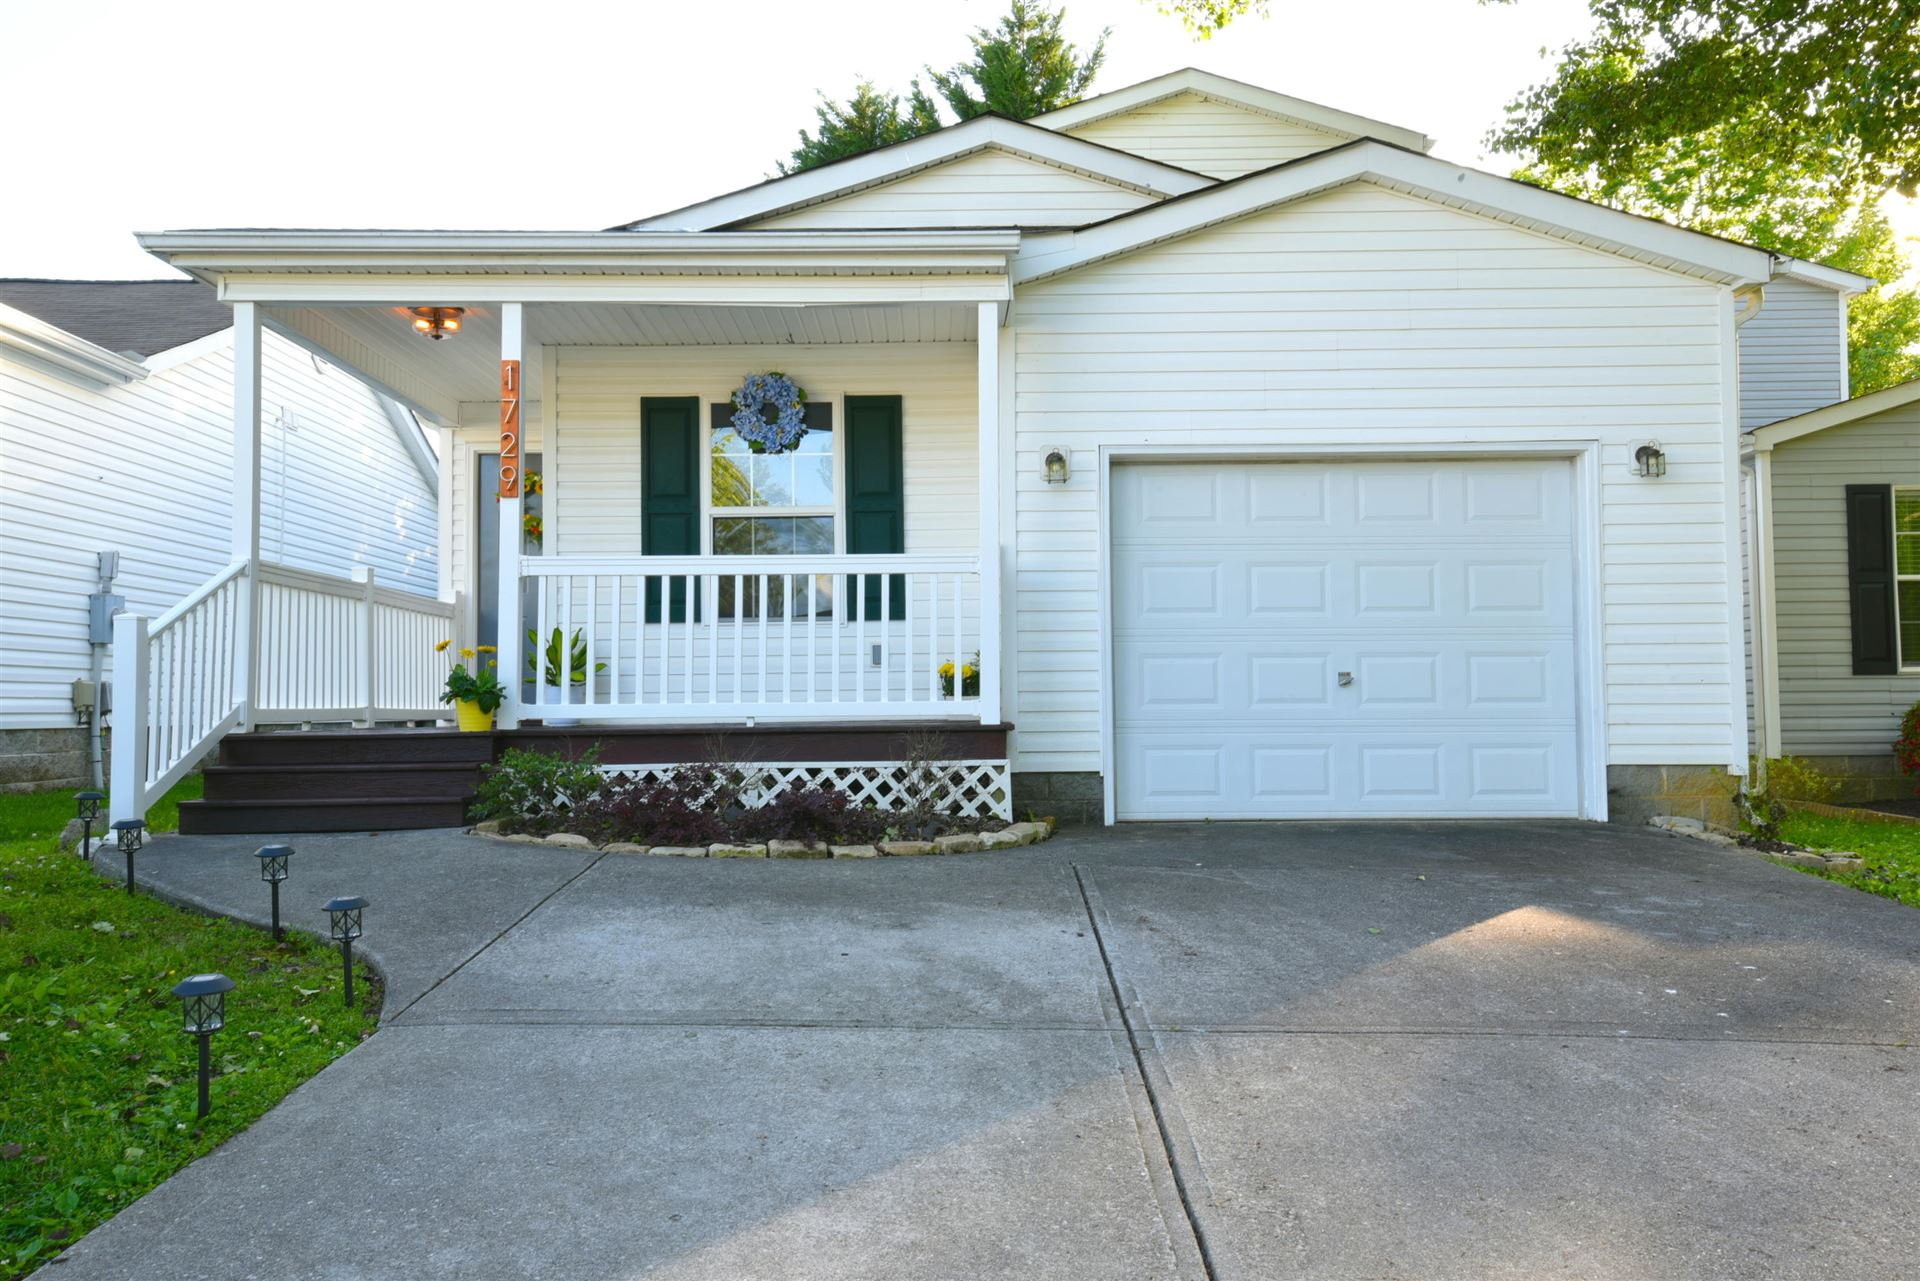 Photo of 1729 Delmonte Way, Knoxville, TN 37932 (MLS # 1152792)